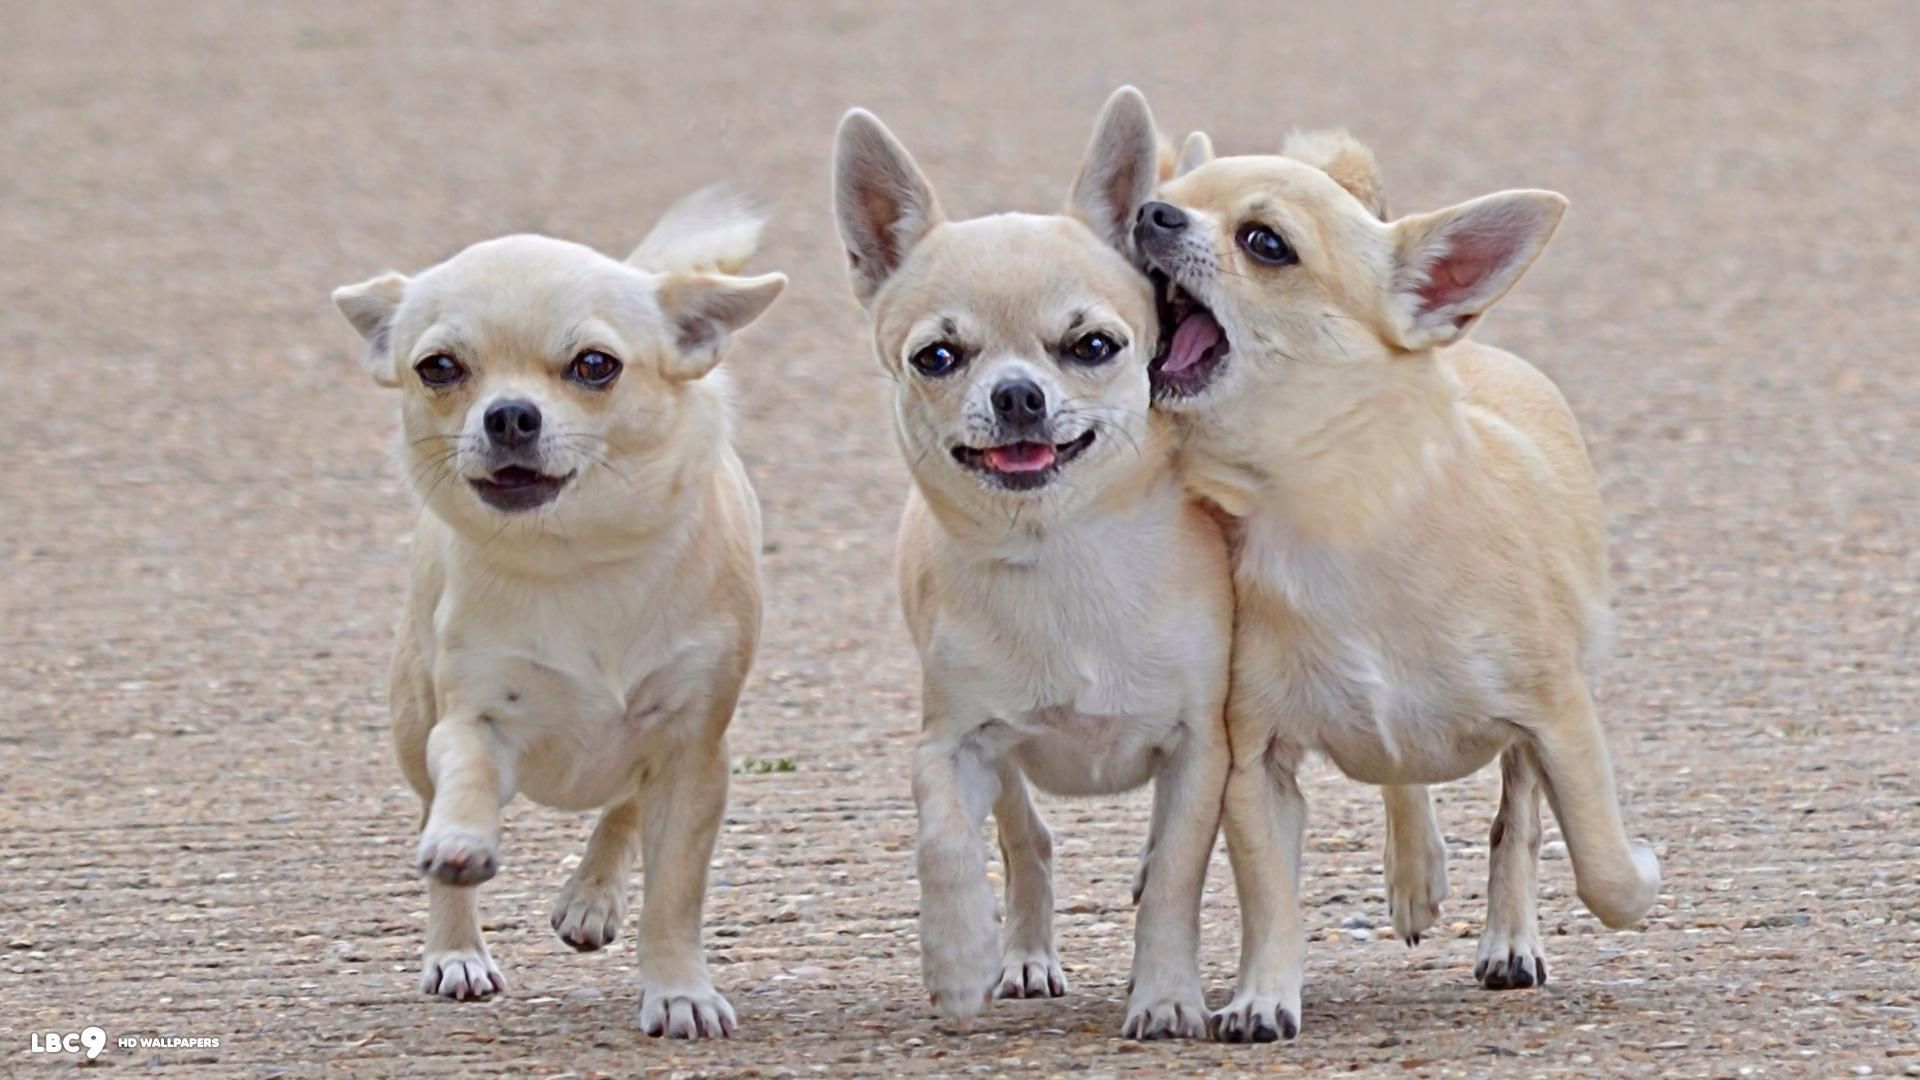 Cute Chihuahua Dogs Wallpapers Top Free Cute Chihuahua Dogs Backgrounds Wallpaperaccess